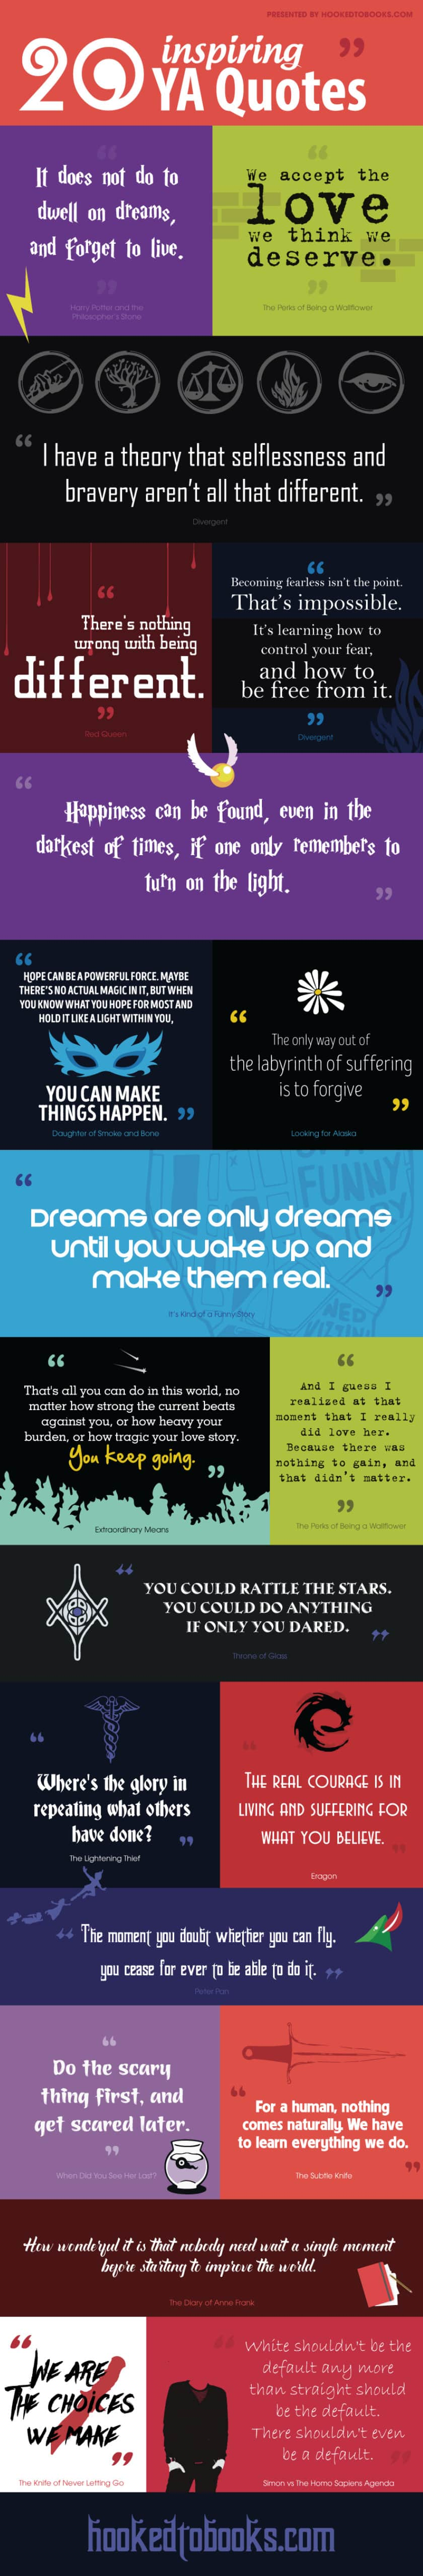 Infographic: Twenty Inspirational Quotes from YA Books Infographic